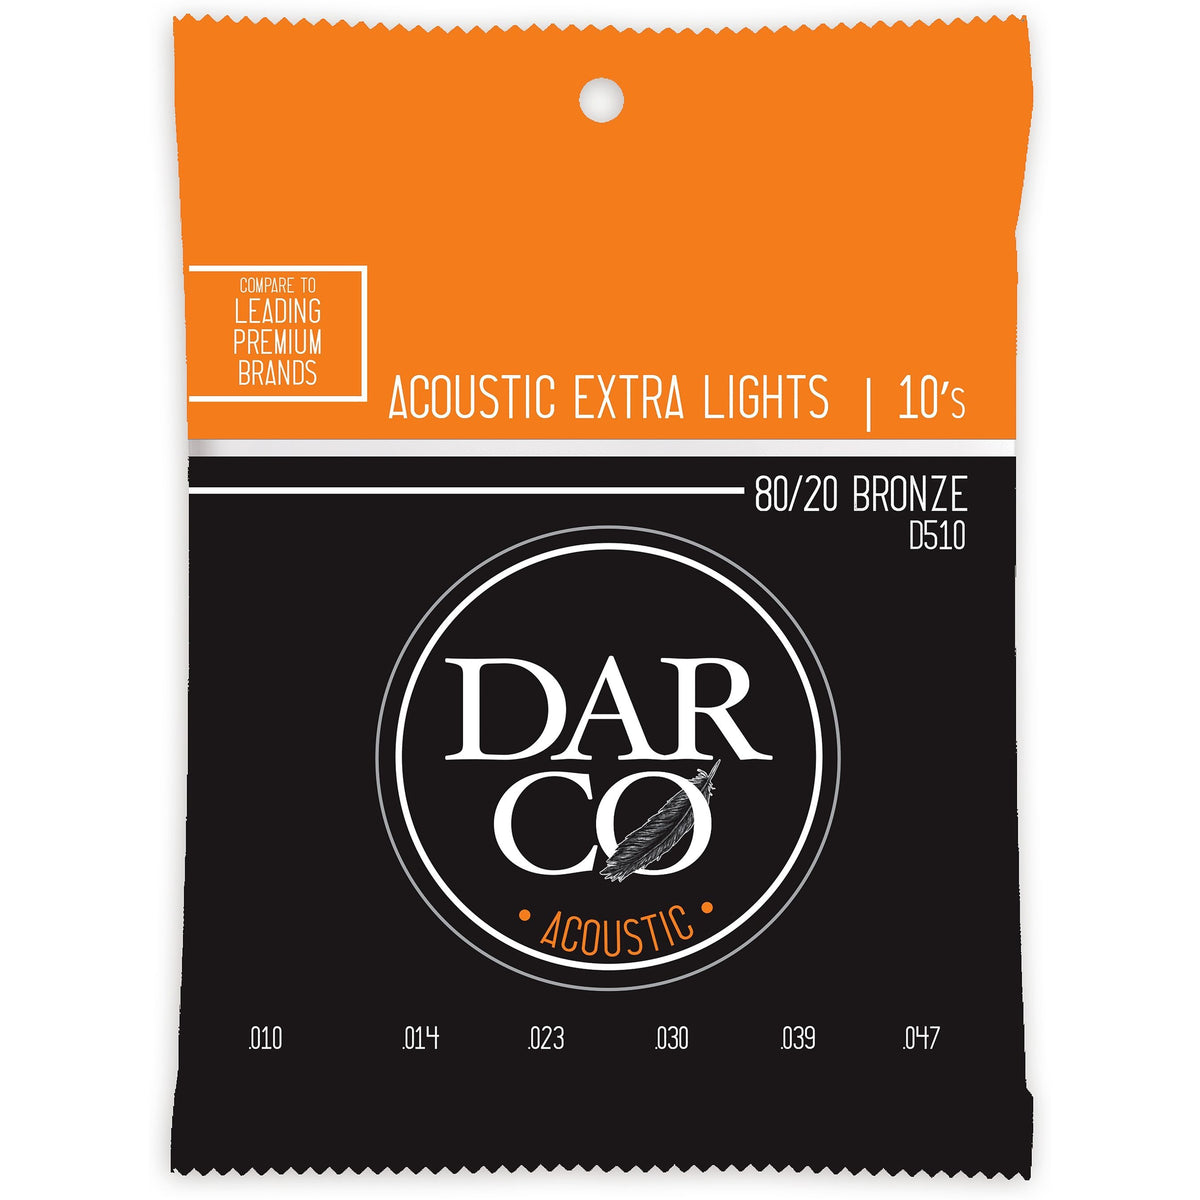 Darco 80/20 Bronze Acoustic Guitar Strings, D510, Extra Light